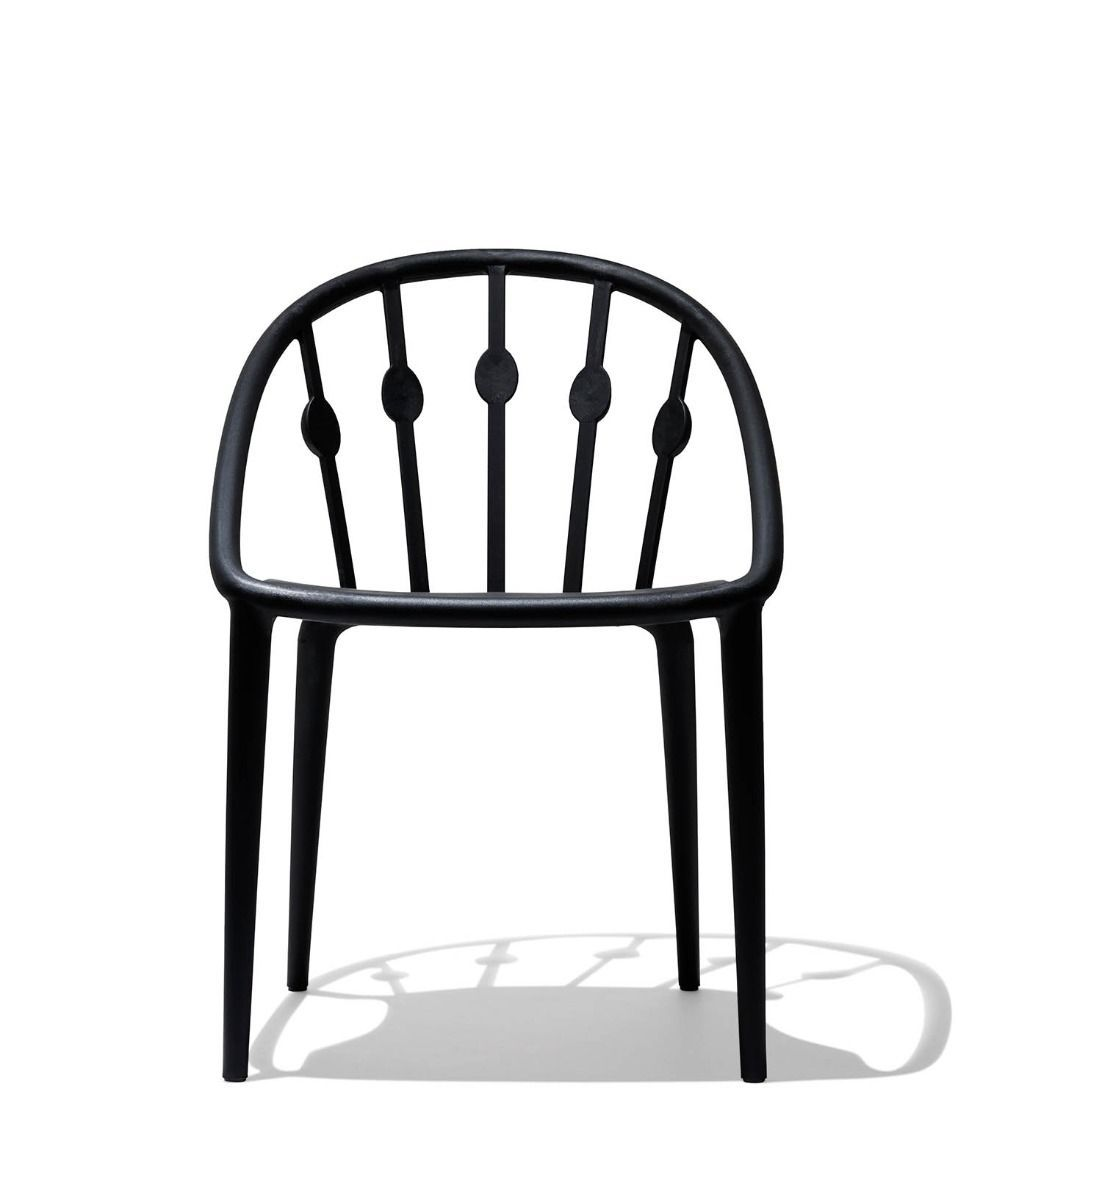 Pleasing Revival Chair Furniture Inspiration Metal Patio Chairs Unemploymentrelief Wooden Chair Designs For Living Room Unemploymentrelieforg